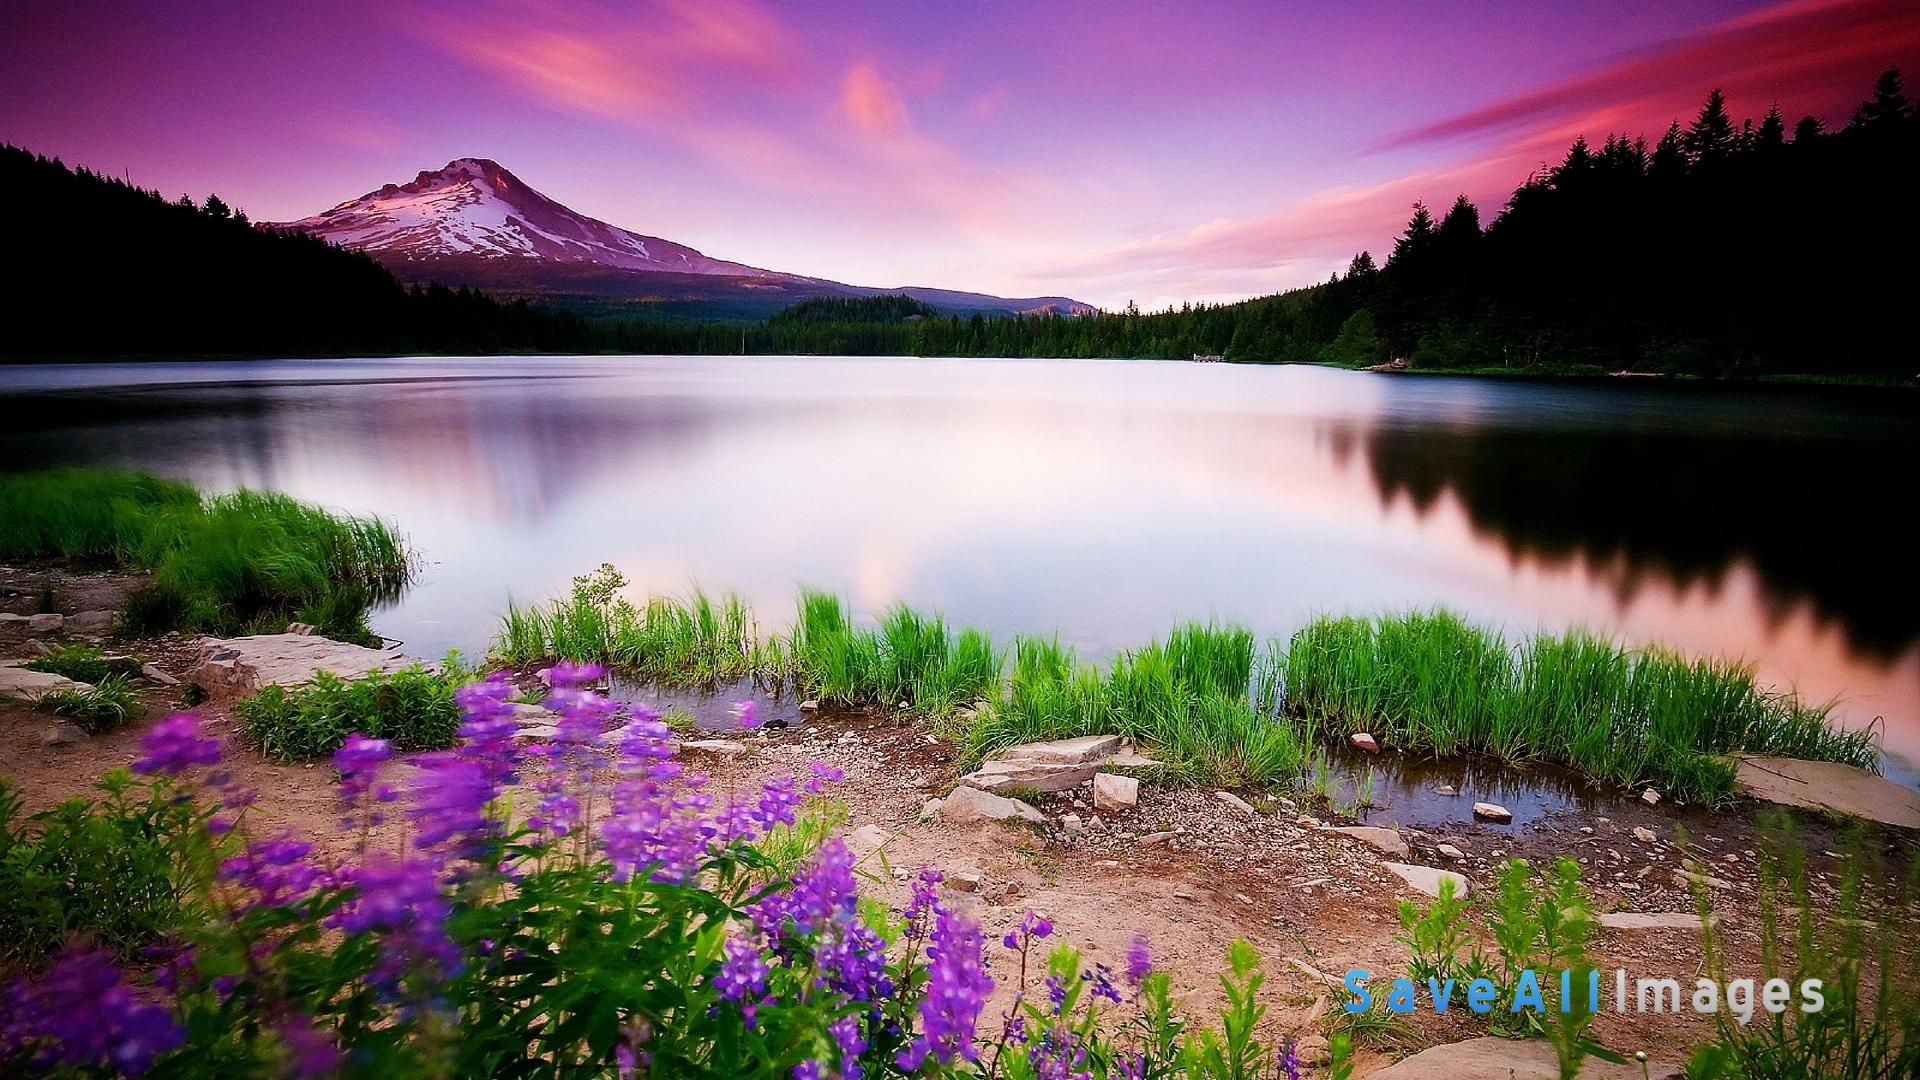 45 hd beautiful wallpapers backgrounds for free download